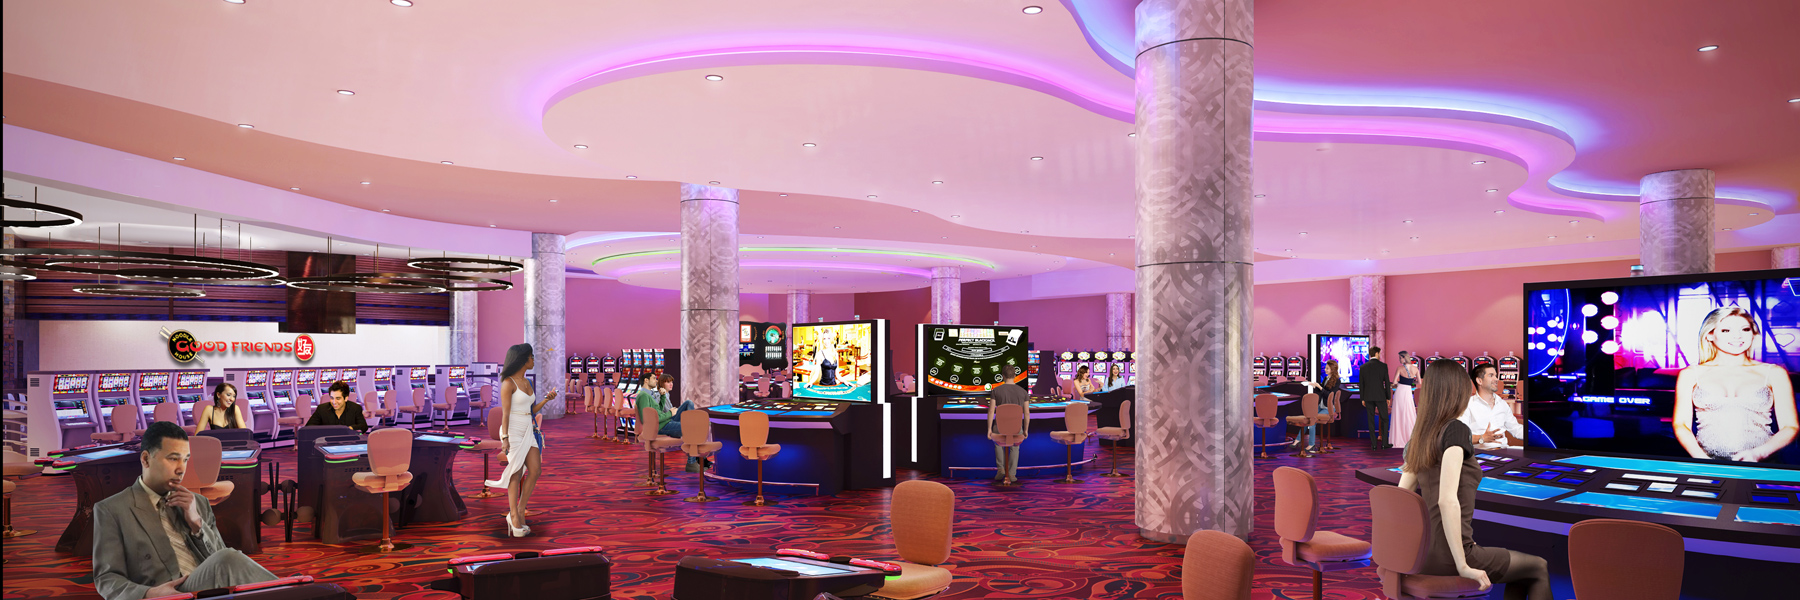 Resorts World Casino - 1st Floor